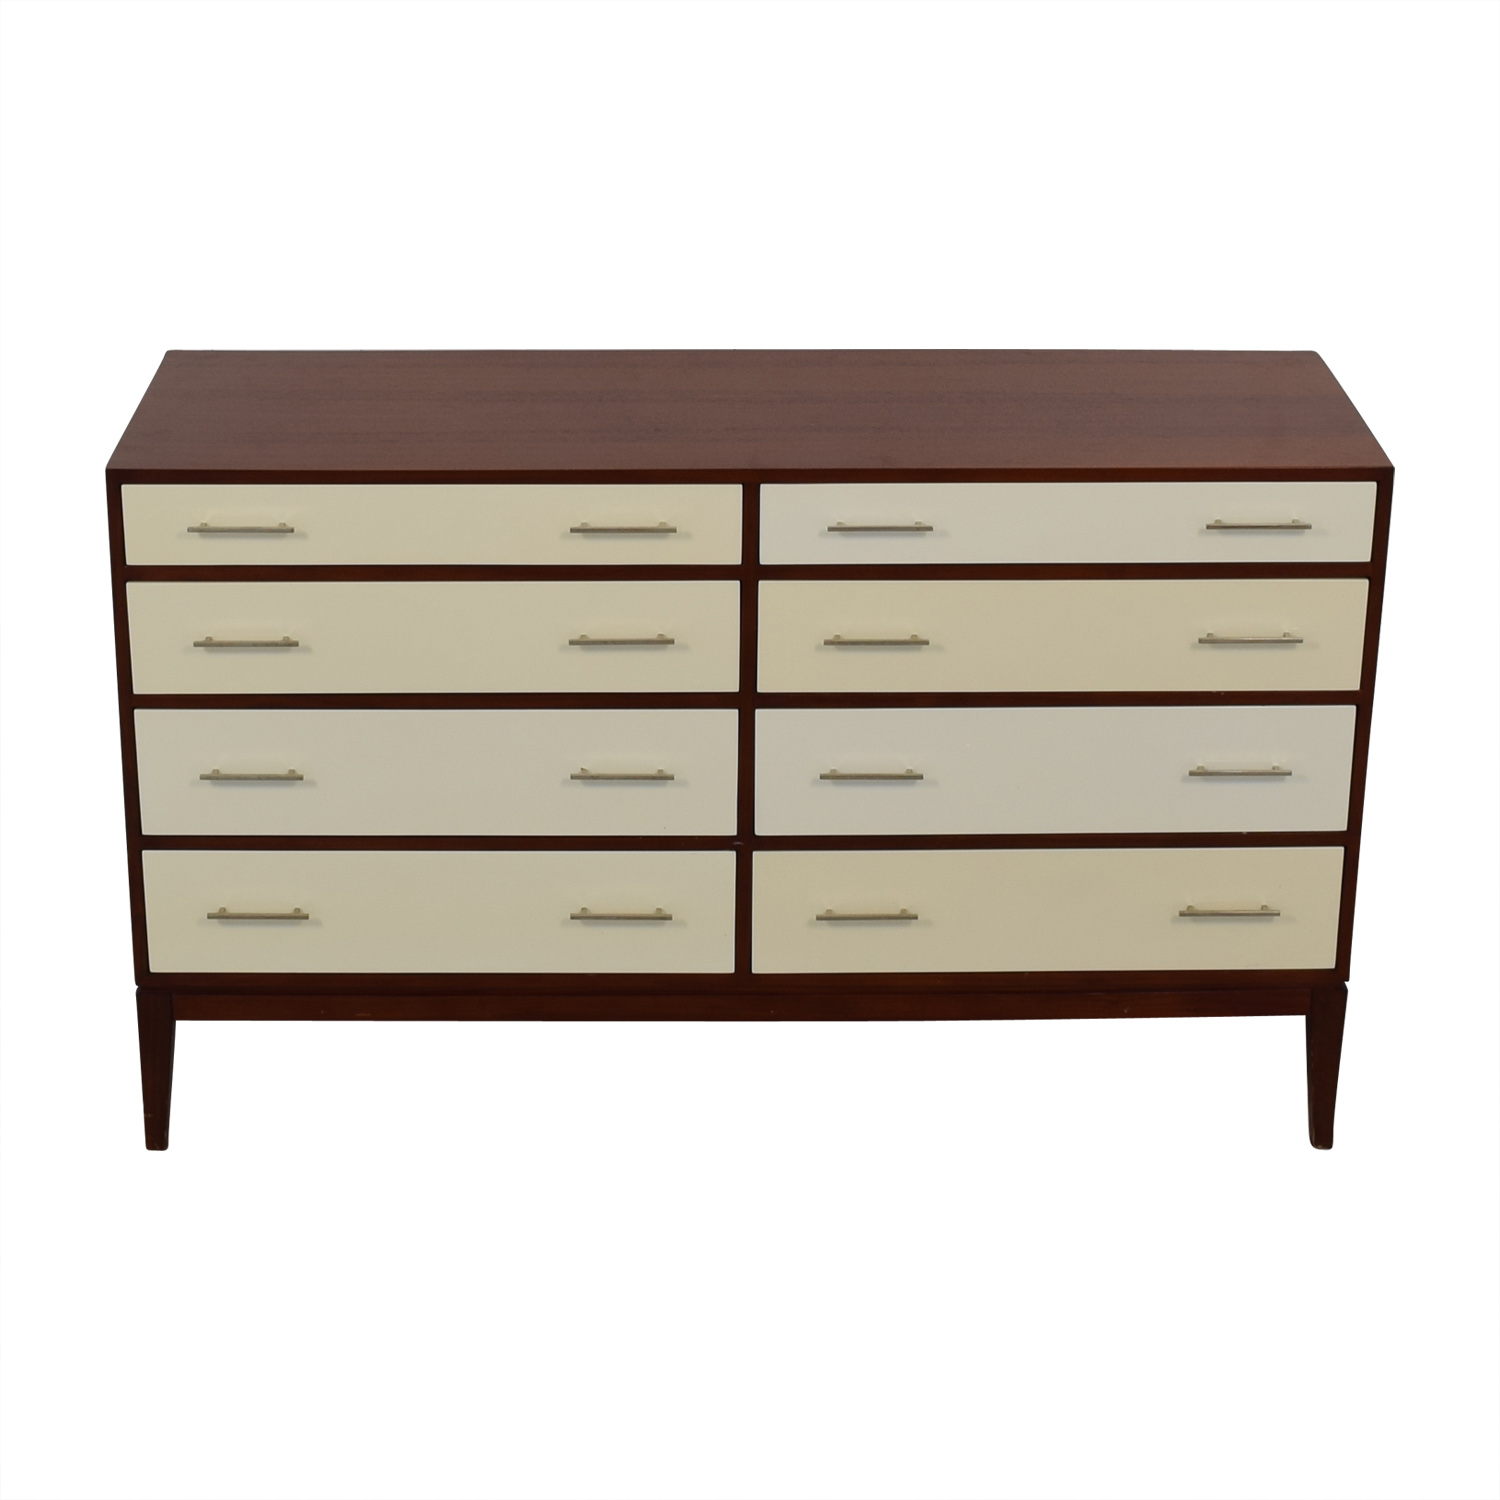 Mitchell Gold + Bob Williams Mitchell Gold + Bob Williams 8 Drawer Dresser brown and white